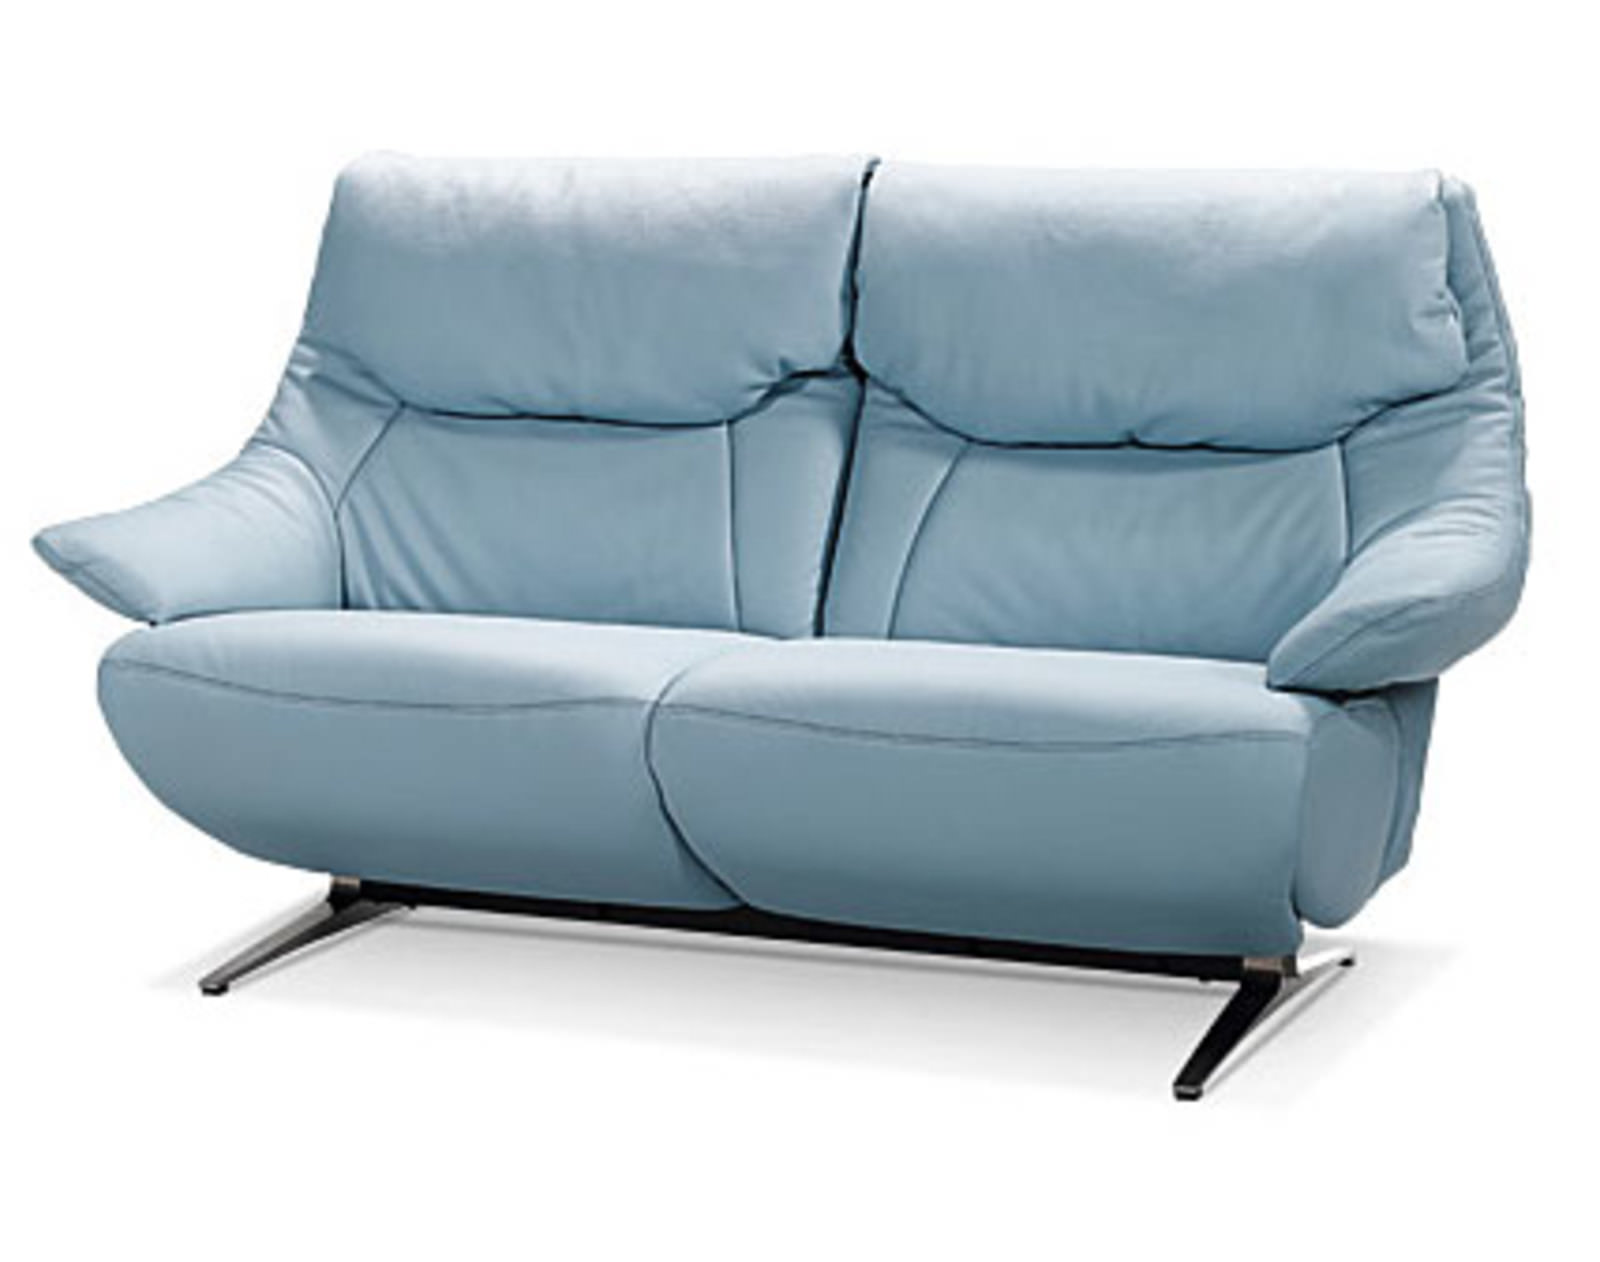 2 5 Sitzer Sofa Leder Sofa 2 5 Sitzer Sofa Sitzer Hover With Sofa 2 5 Sitzer